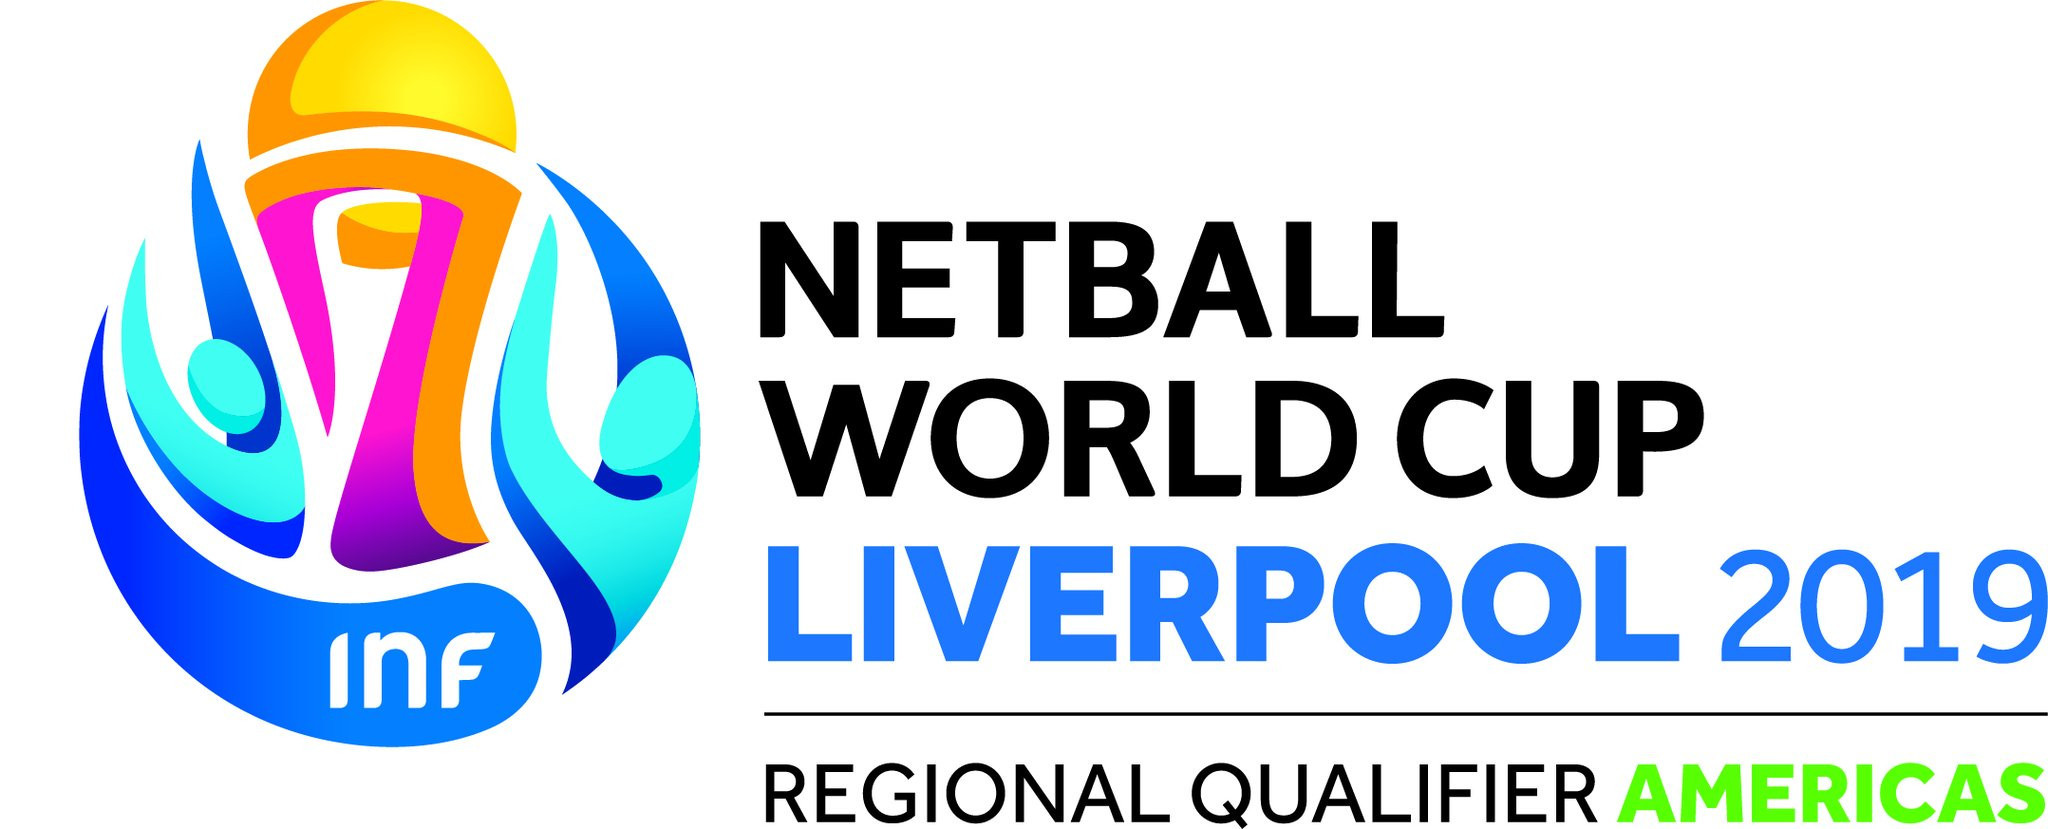 Hosts Barbados cement top spot at 2019 Netball World Cup Americas qualifier